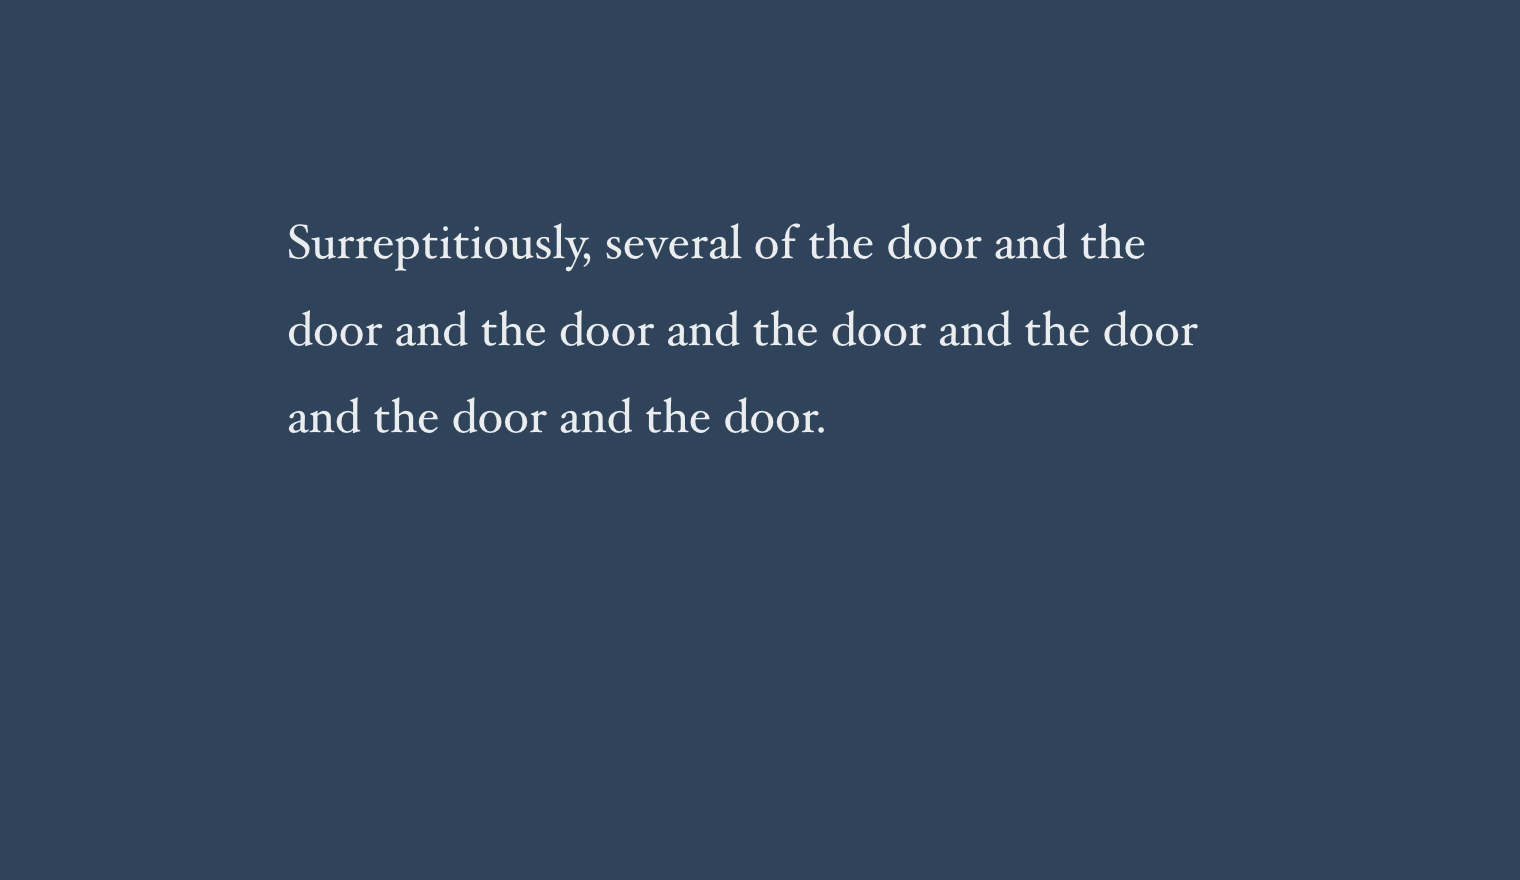 Surreptitiously, several of the door and the door and the door and the door and the door and the door and the door.